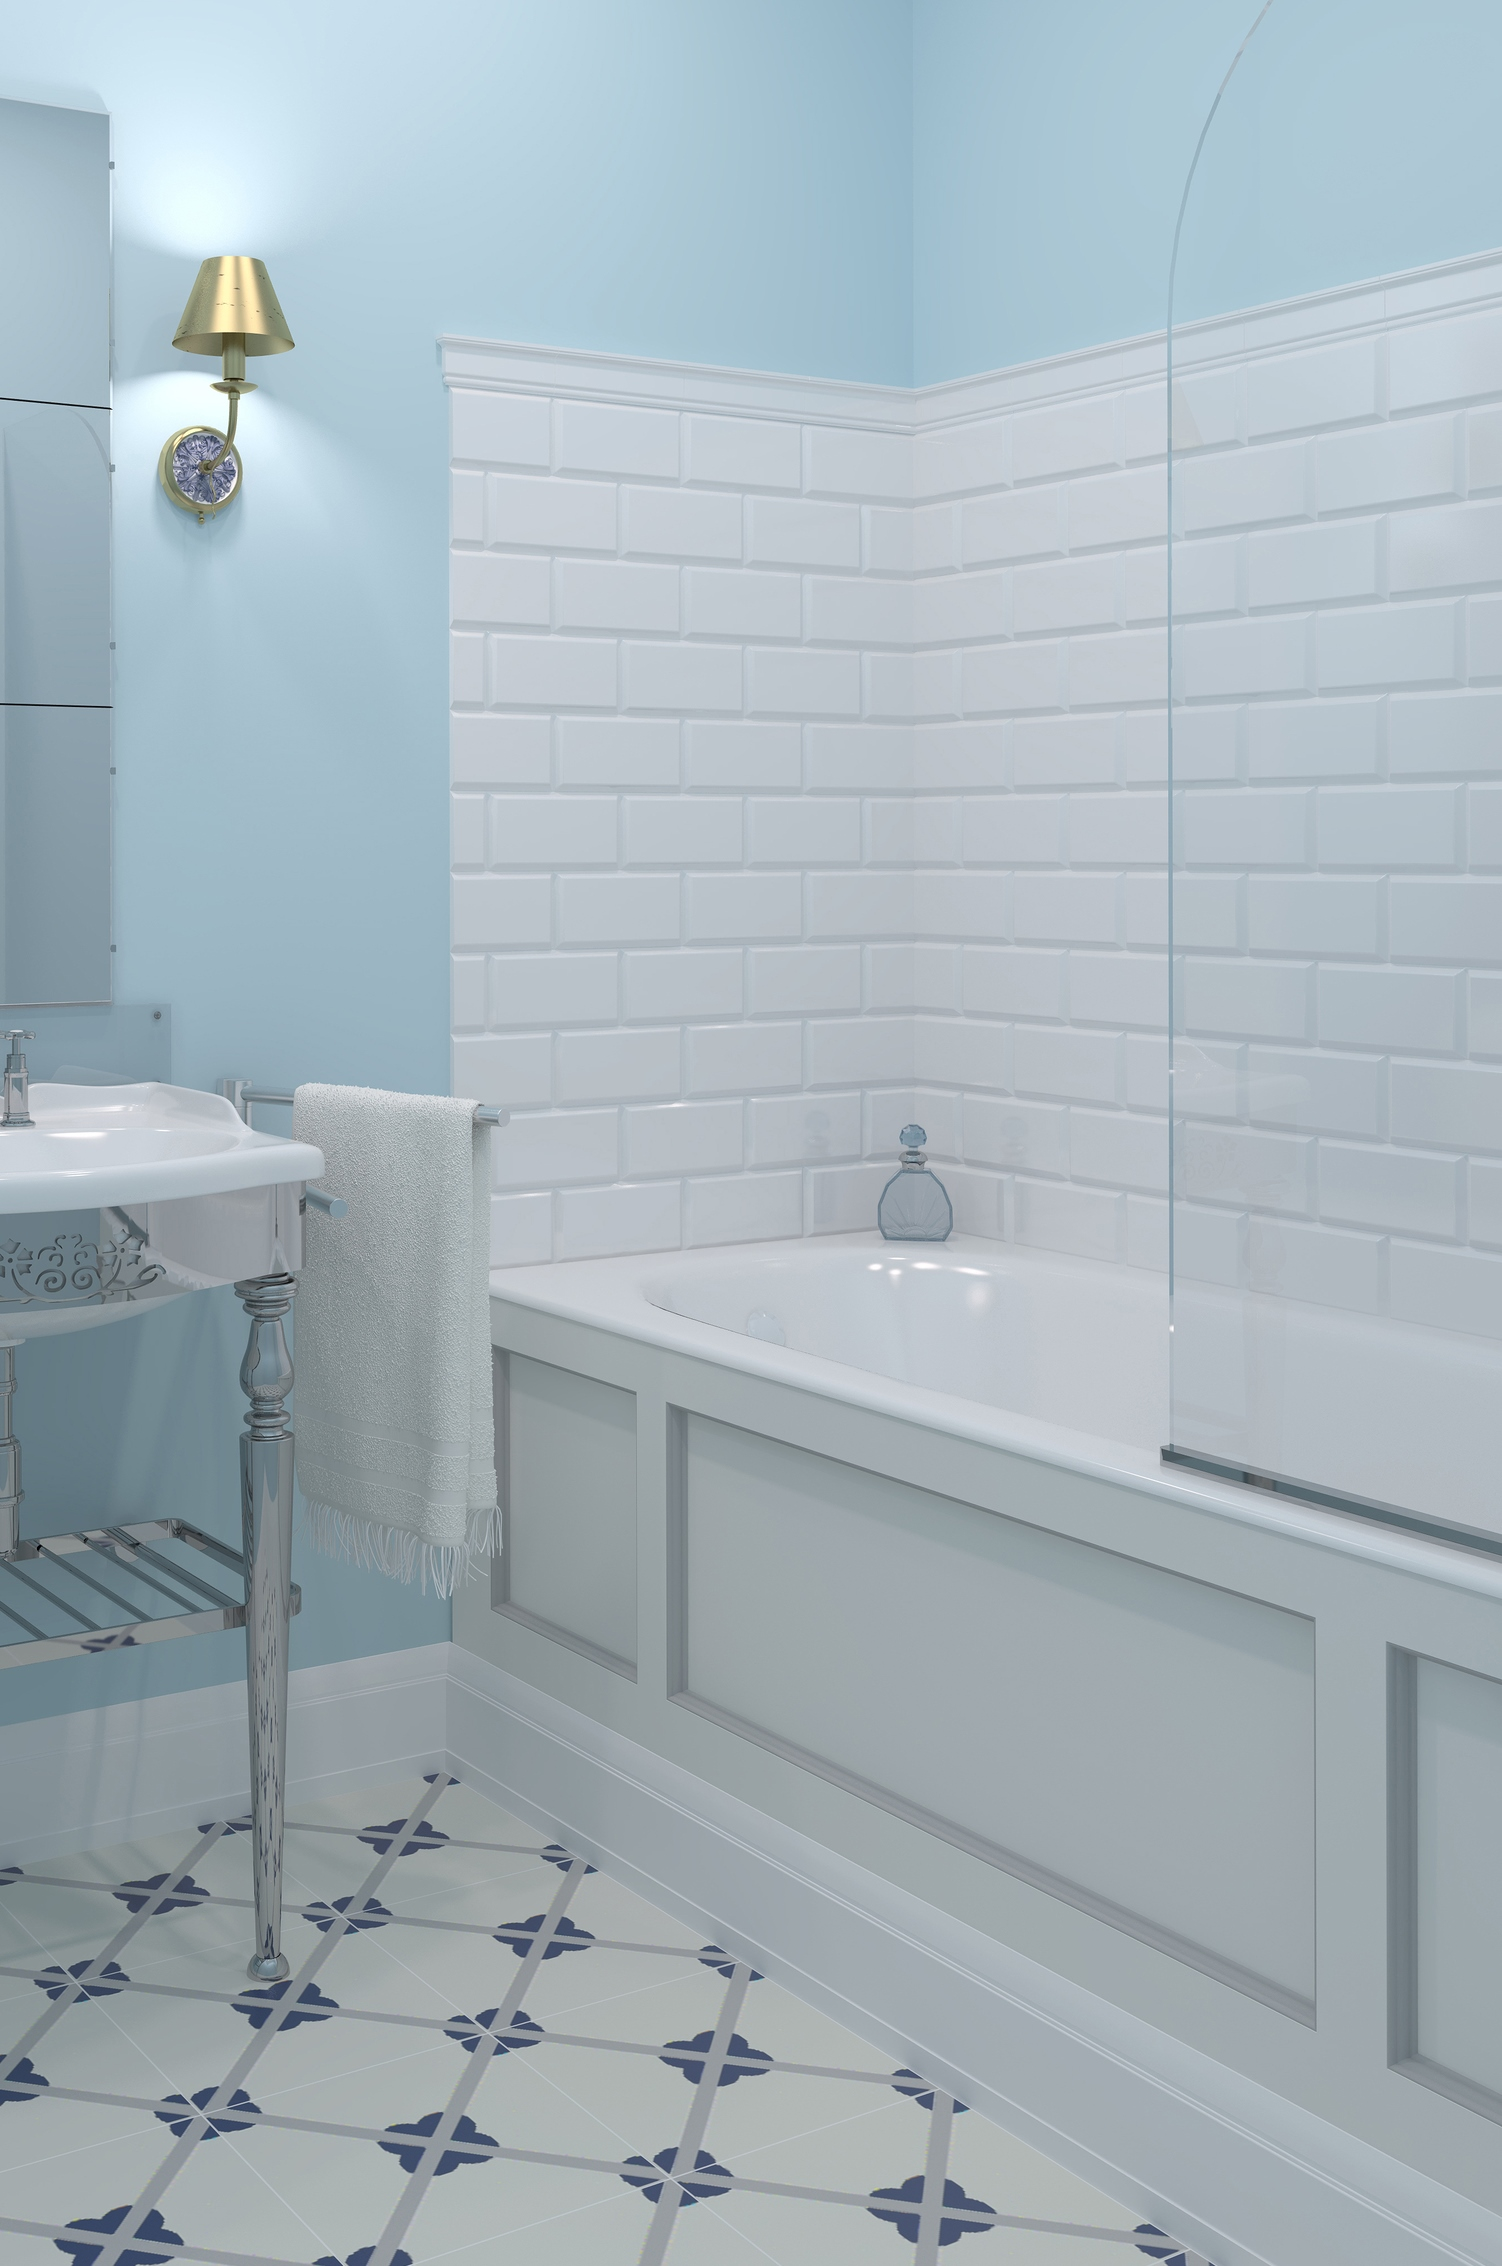 Bath And Shower Com tub and shower liners company in ocala, fl